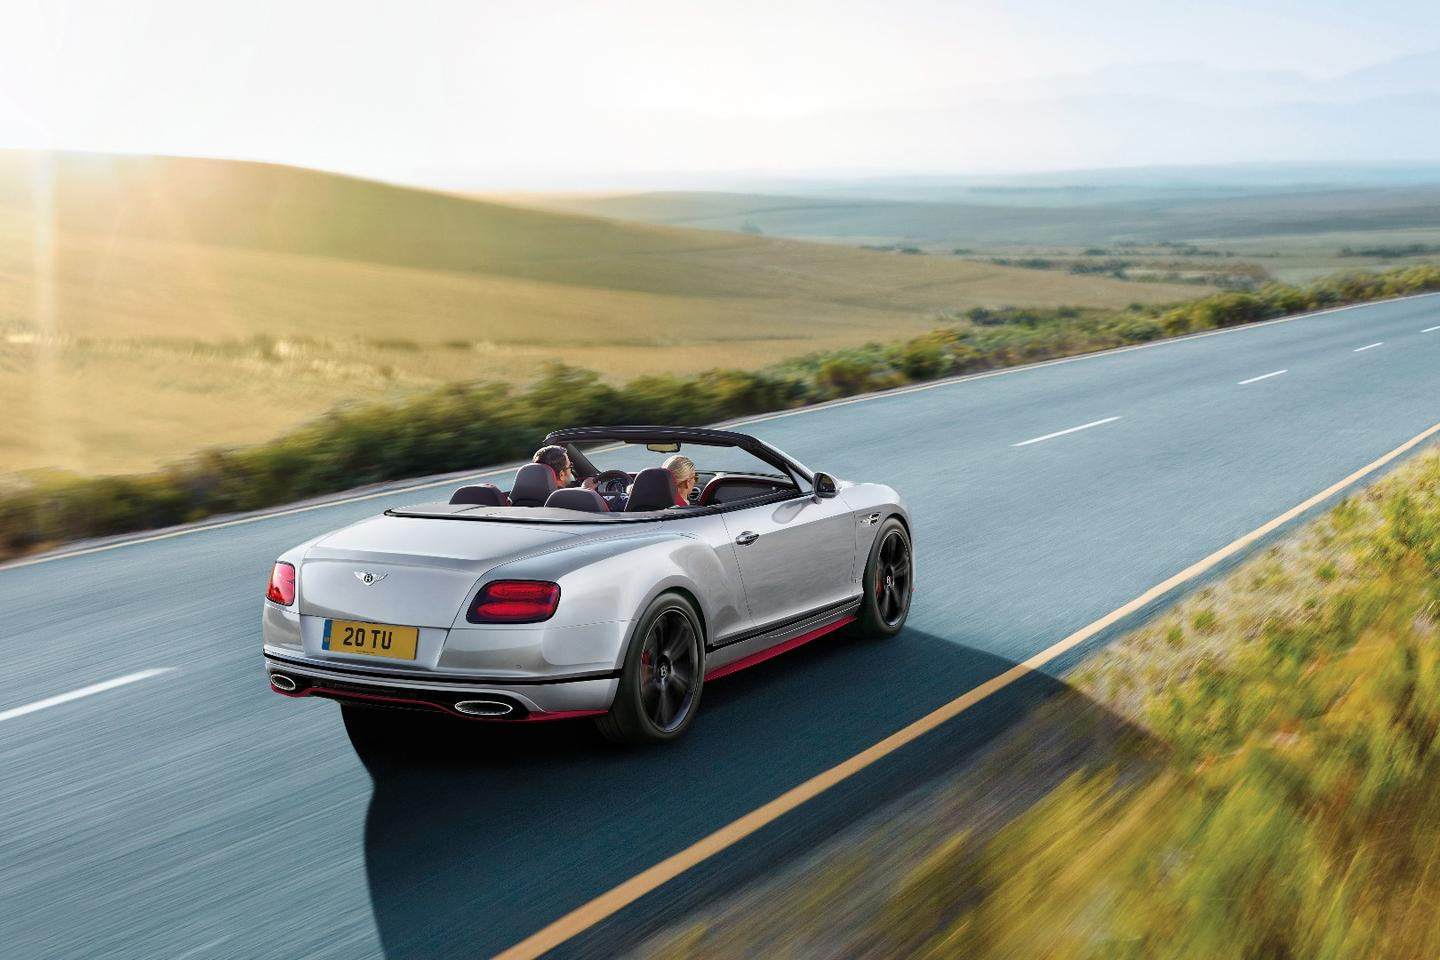 The Bentley Continental GT Speed also comes in a convertible